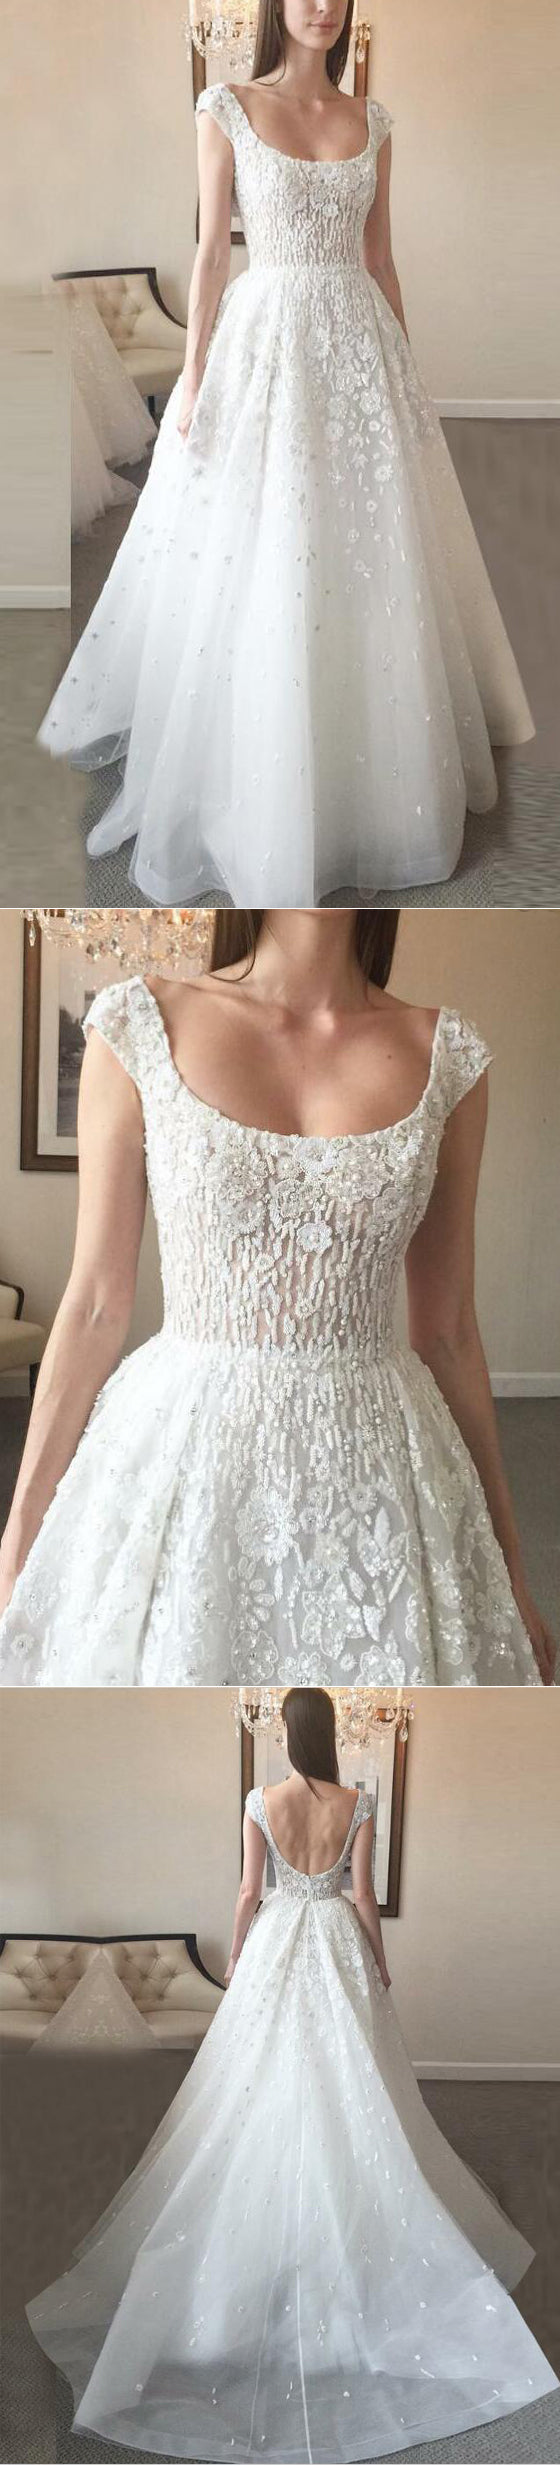 Cap Sleeve Simple Formal A Line Long Beach Wedding Dresses, BGP240 - Bubble Gown